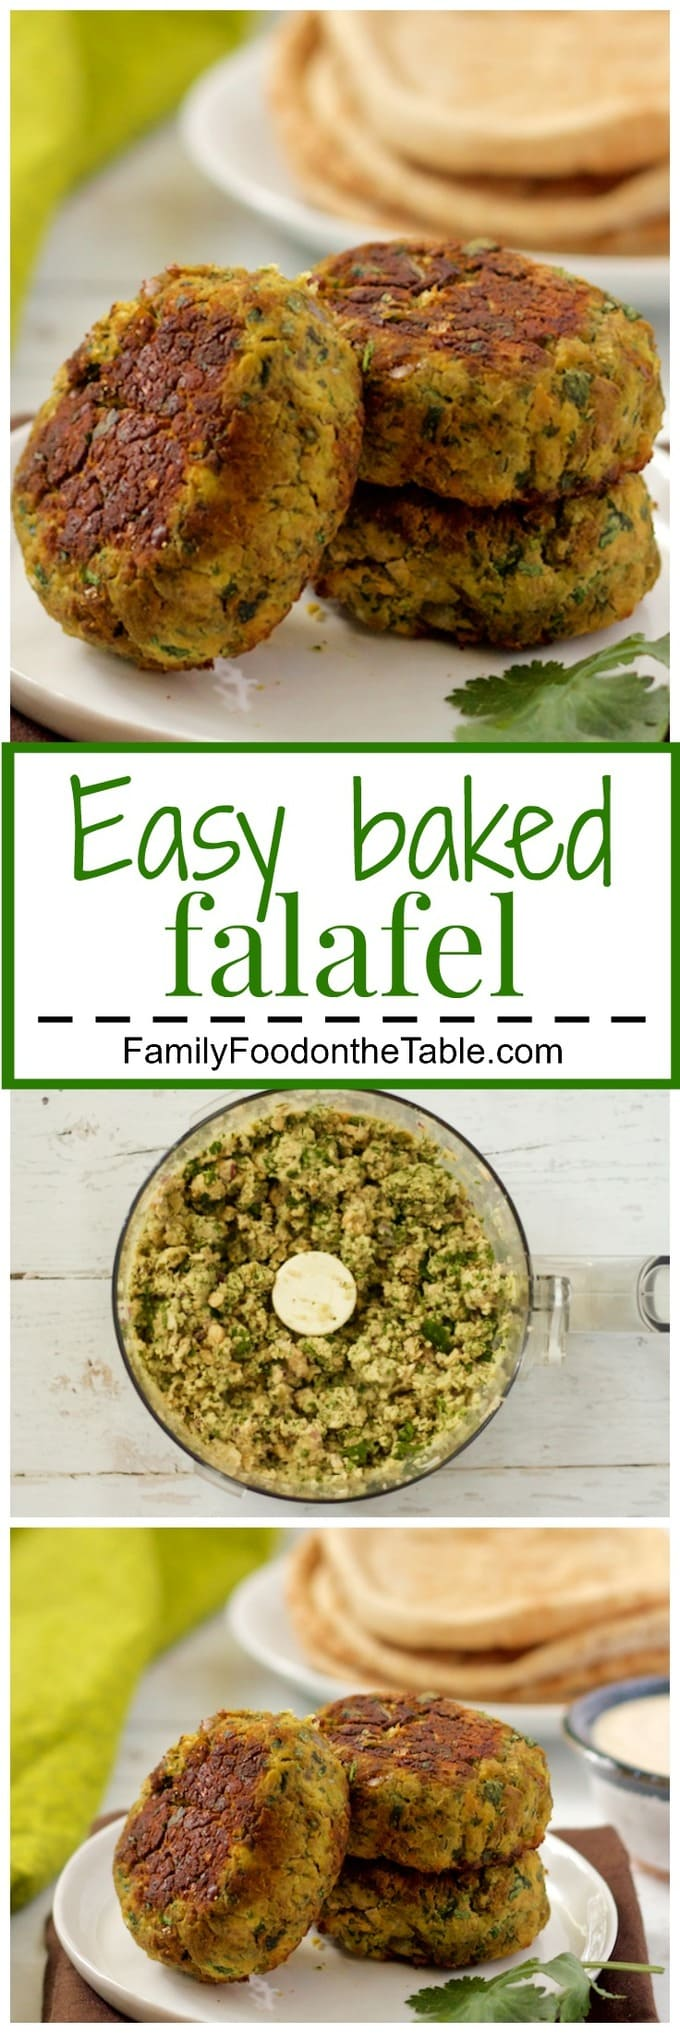 Easy baked falafel - these have a crispy exterior and soft inside with ...